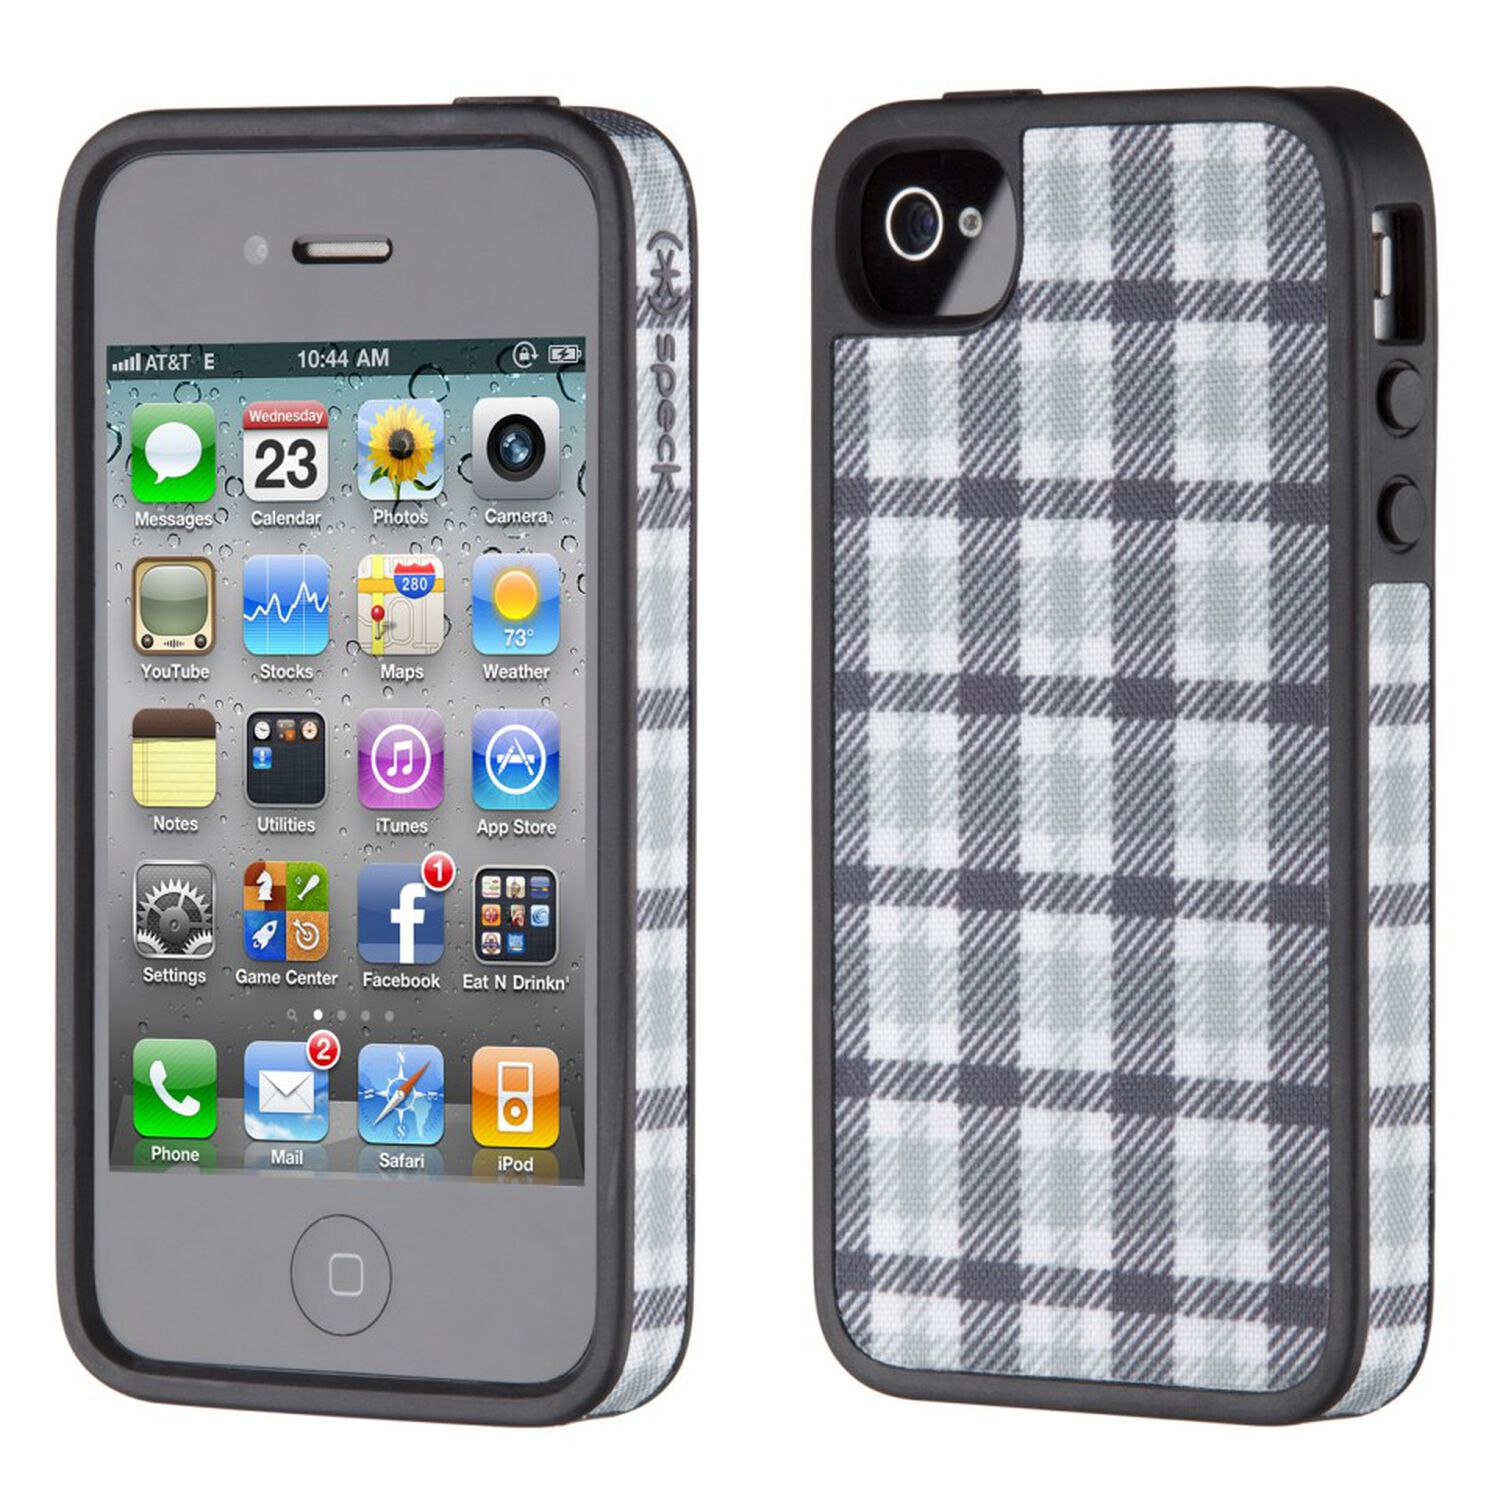 fabshell iphone 4s iphone 4 cases. Black Bedroom Furniture Sets. Home Design Ideas